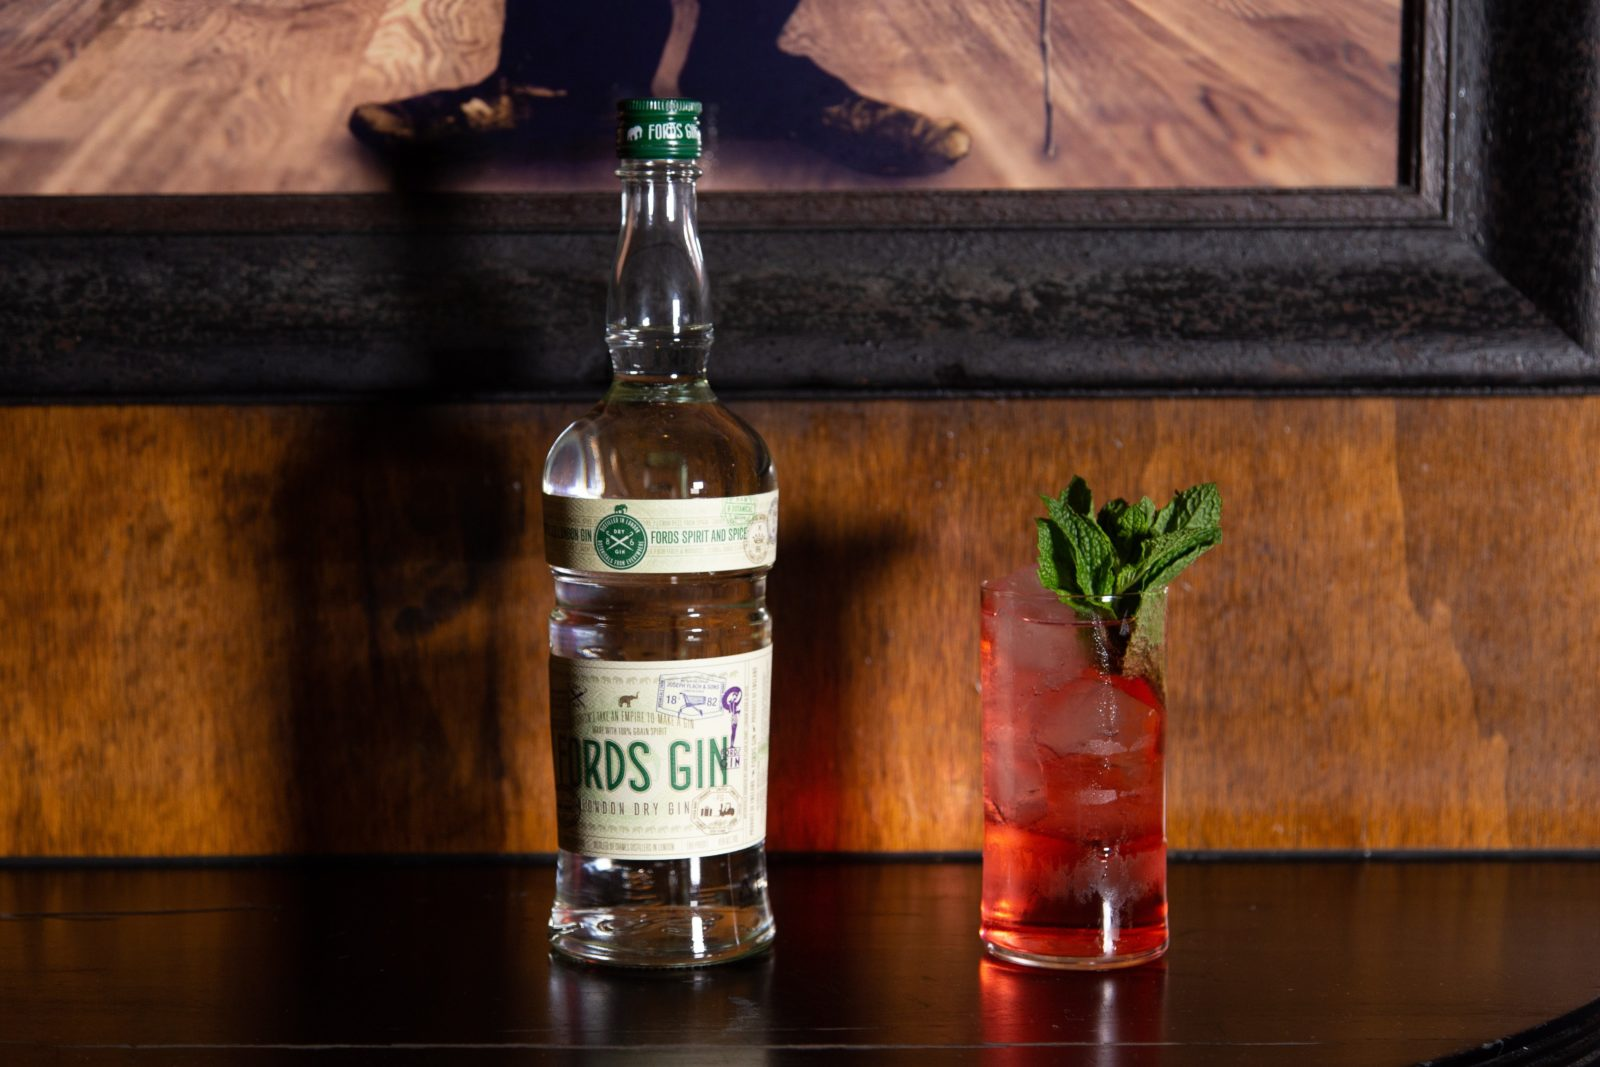 Lemon-infused Ford's Gin, refreshing watermelon juice, and topped with Fever-Tree MediterraneanTonic